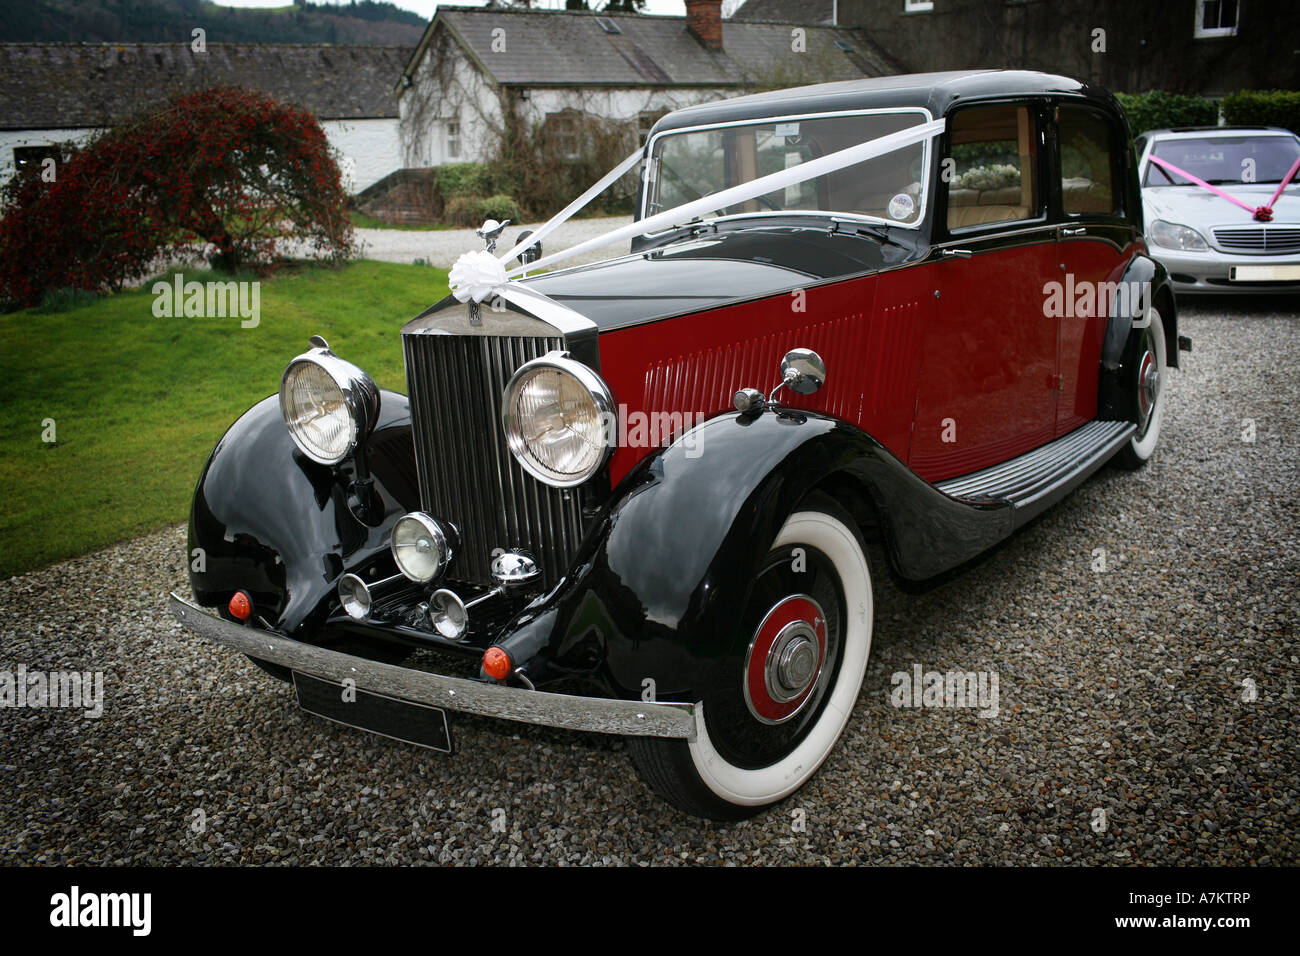 Vintage Wedding Car Stock Photos & Vintage Wedding Car Stock Images ...